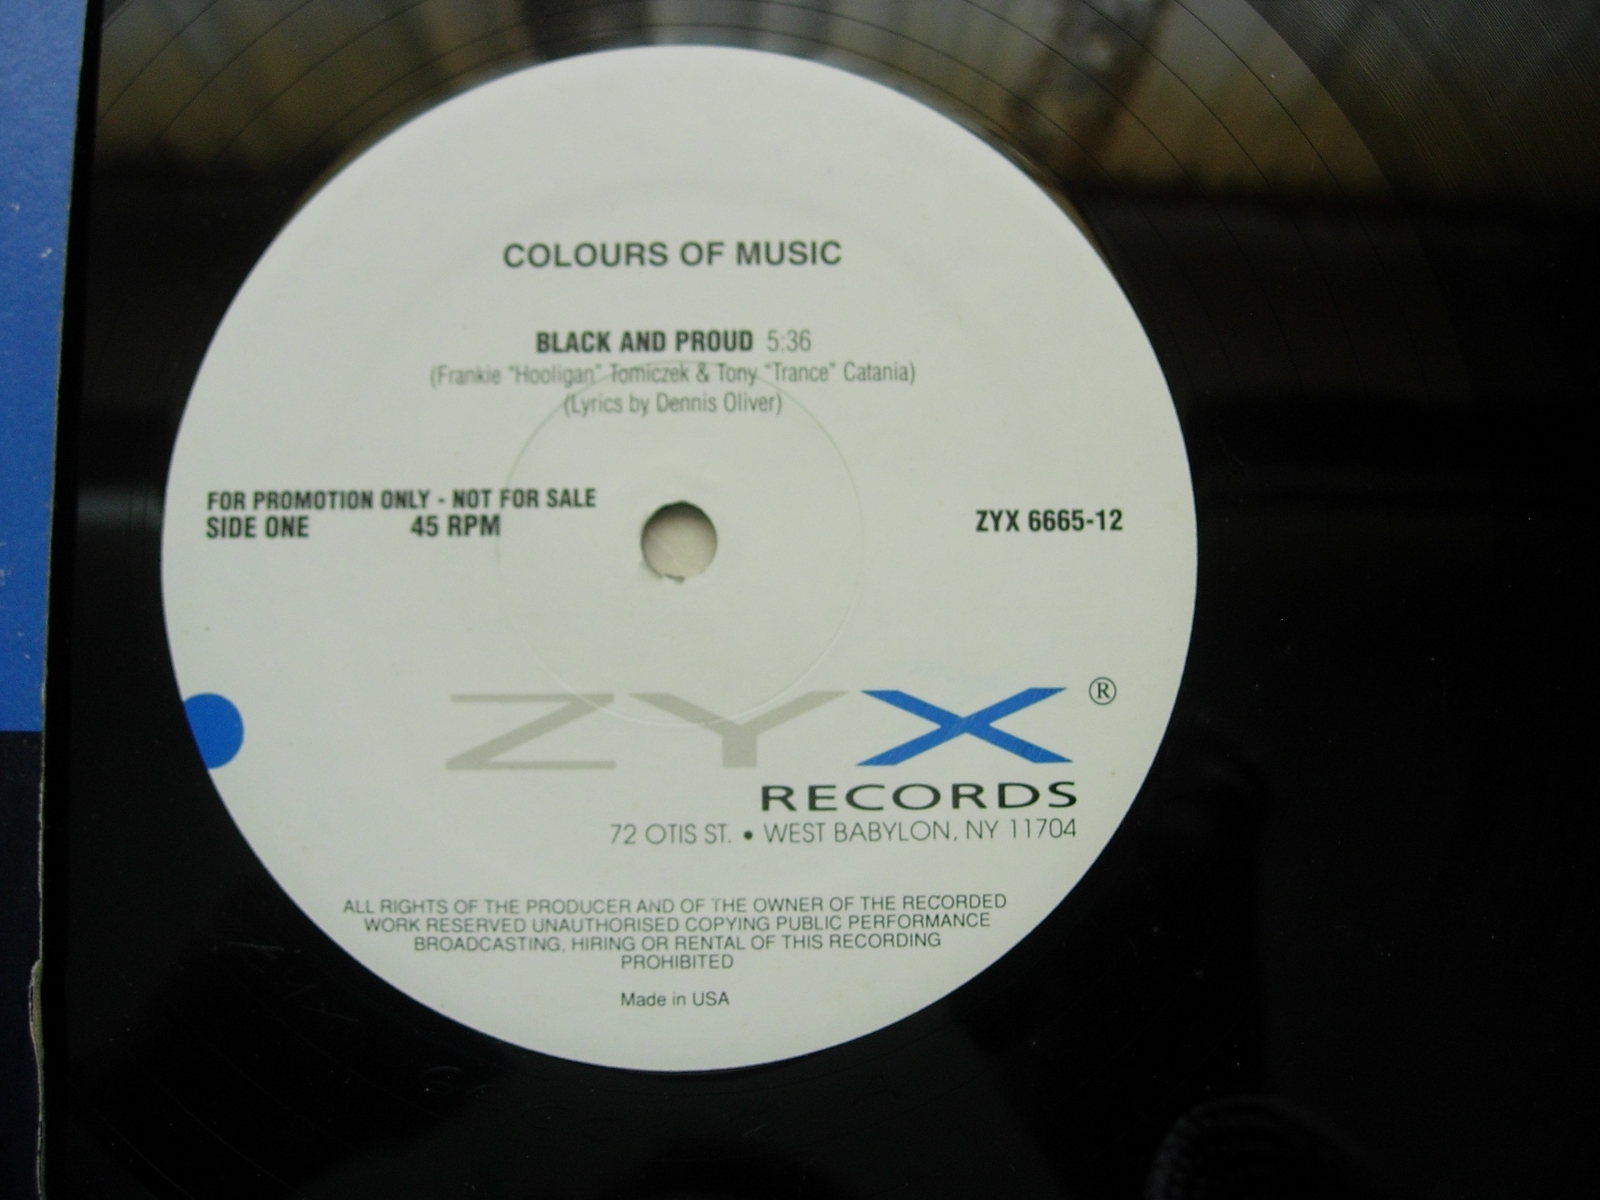 Colours of Music - Black and Proud - ZYX Records 6665-12